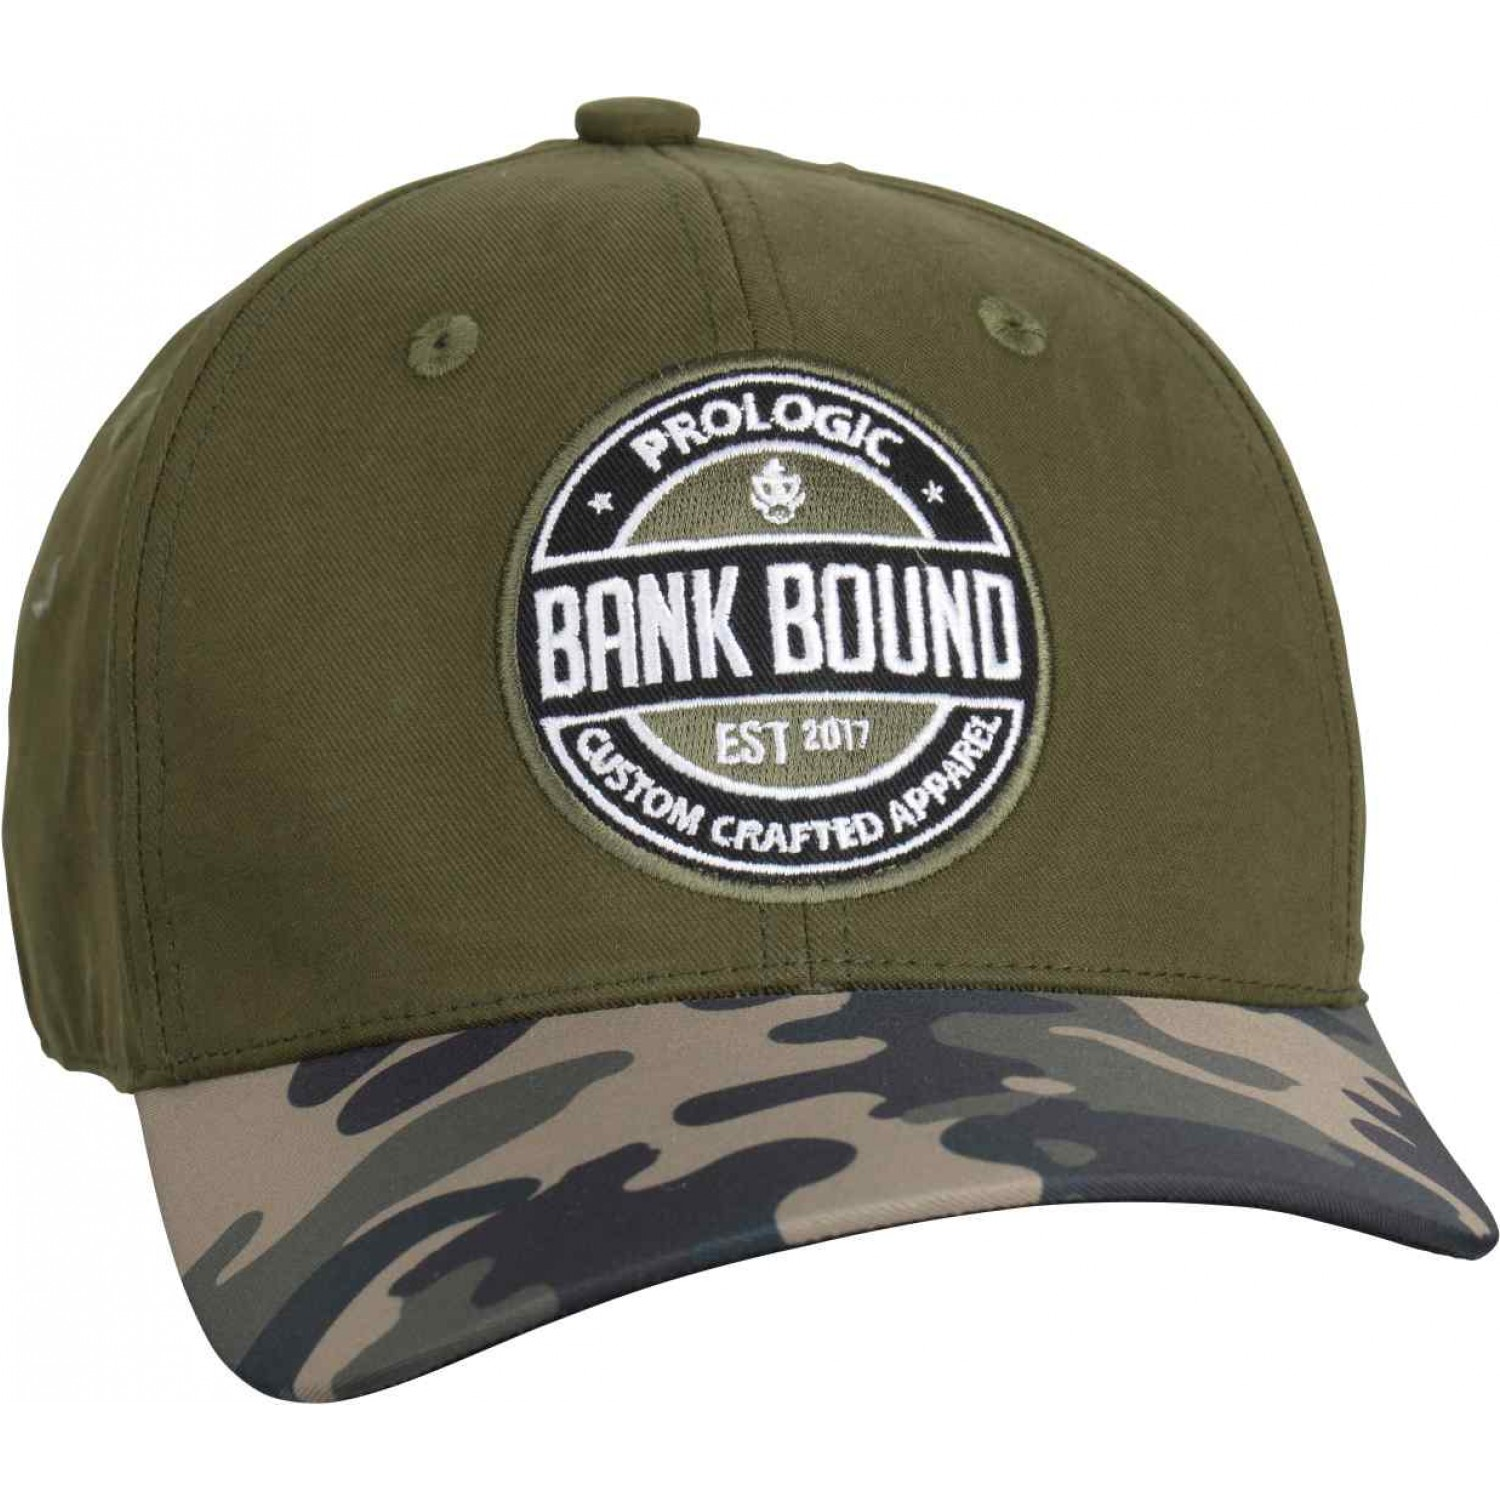 Prologic Bank Bound Camo Cap Green/Camo One Size